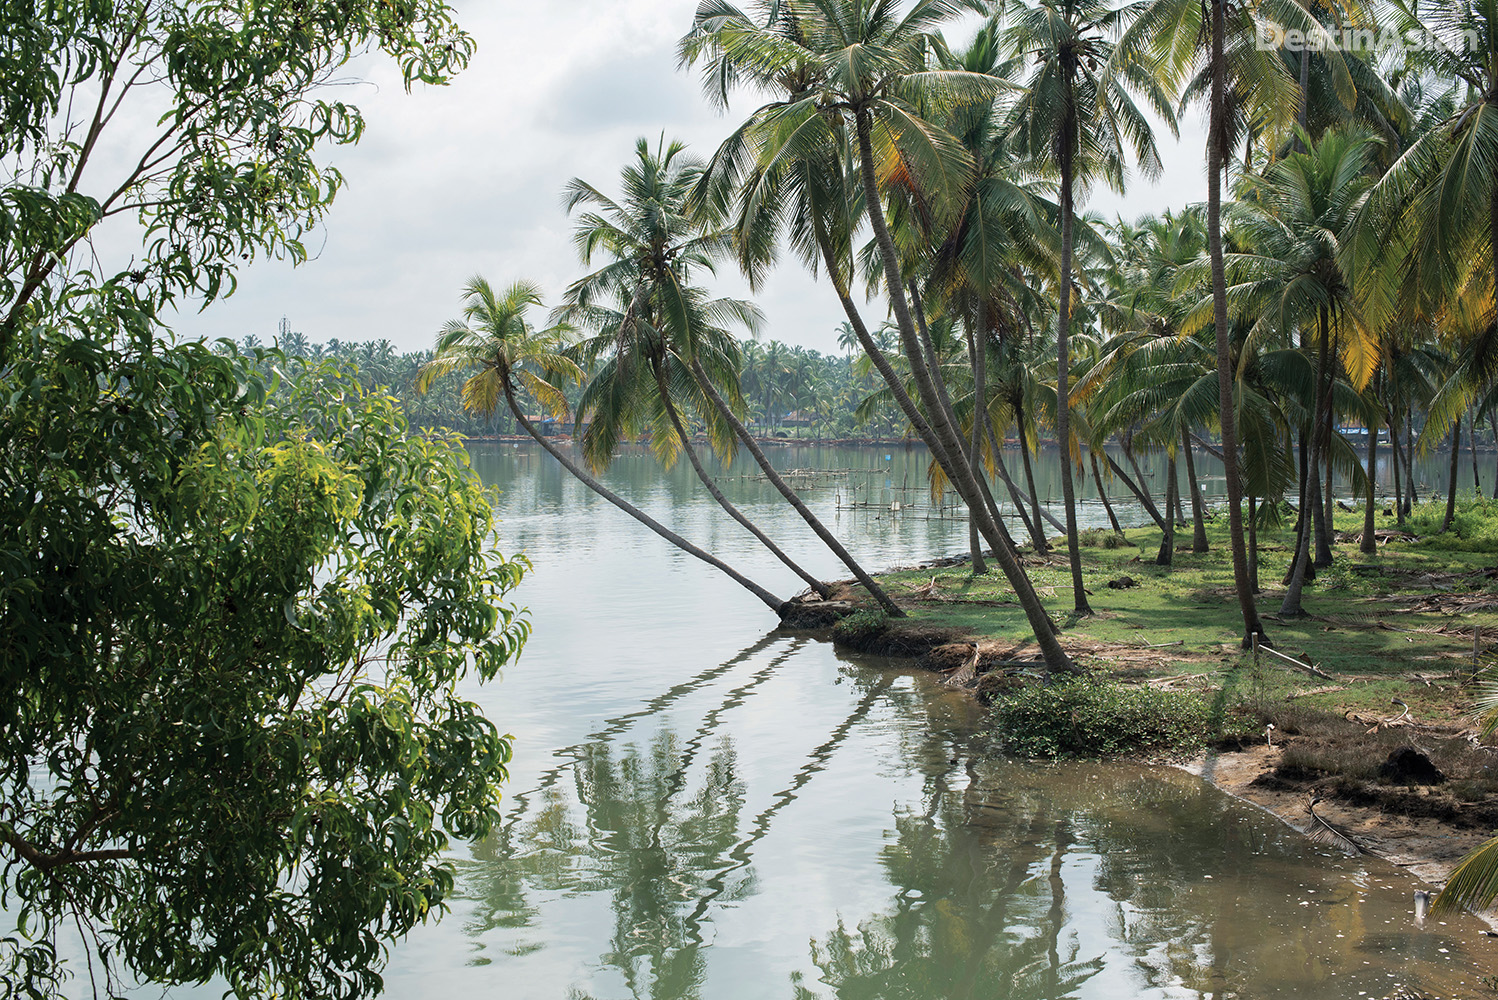 A scenic stretch of the Valiyaparamba backwaters.